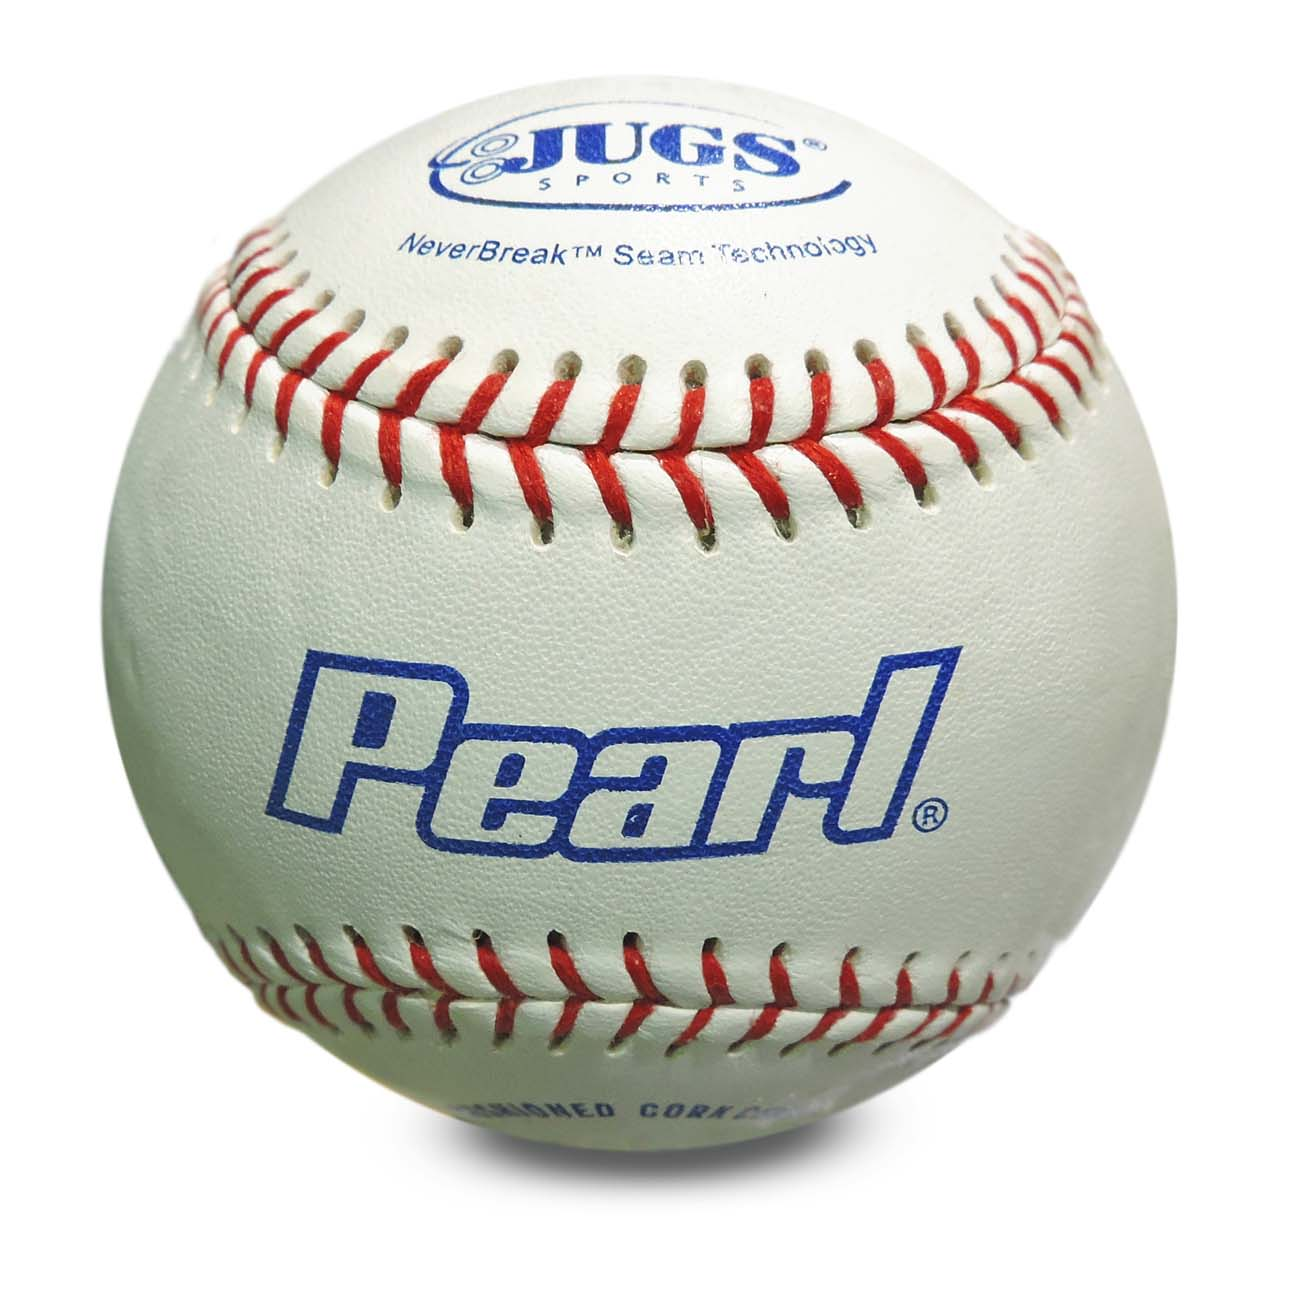 JUGS Pearls® - Leather Baseballs Designed for Pitching Machines  (1 Dozen Baseballs)